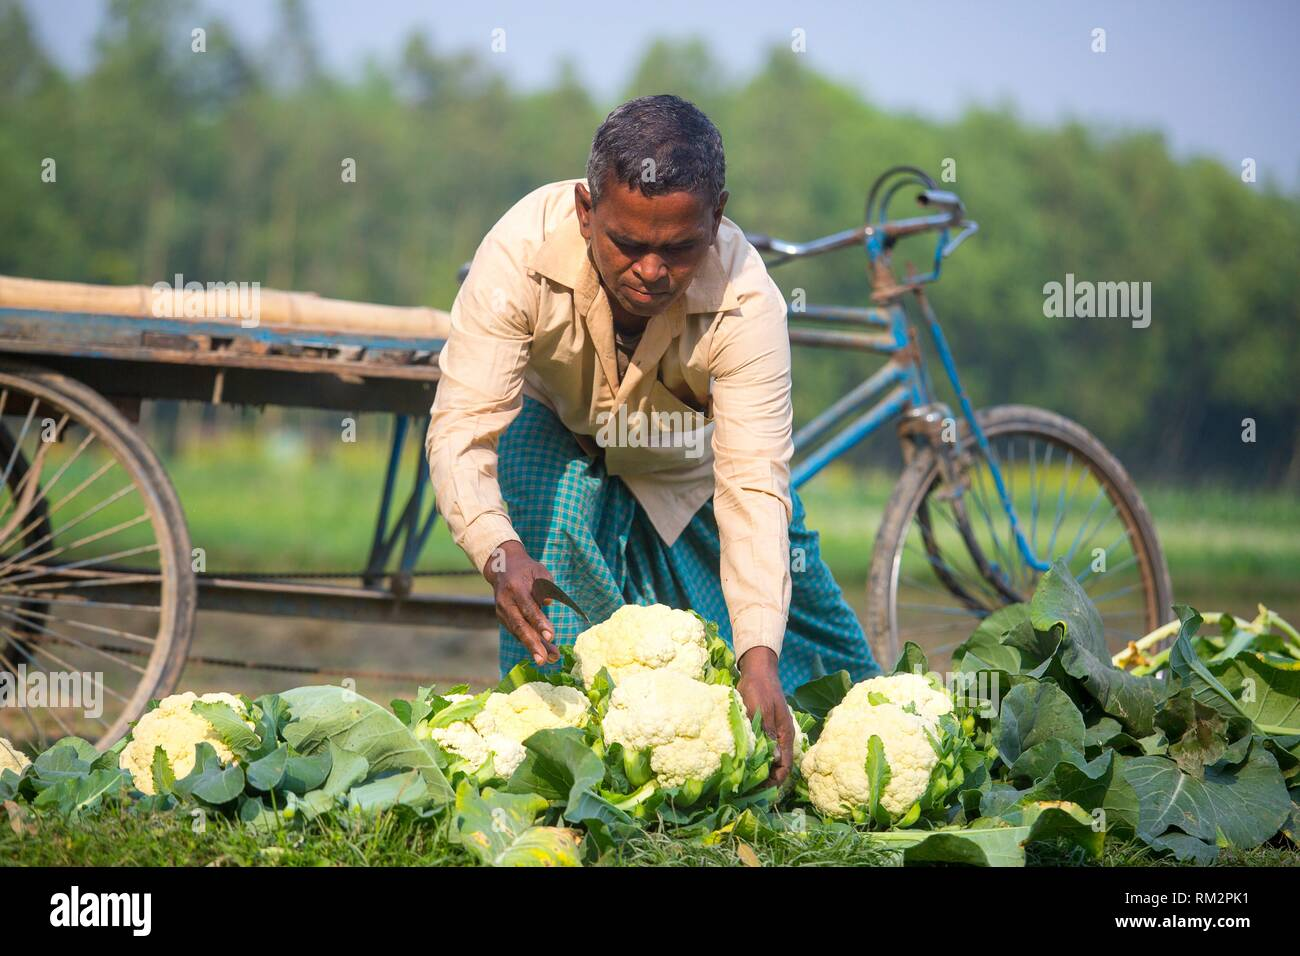 A farmer truncating Cauliflower leafs at Manikgonj, Bangladesh. - Stock Image